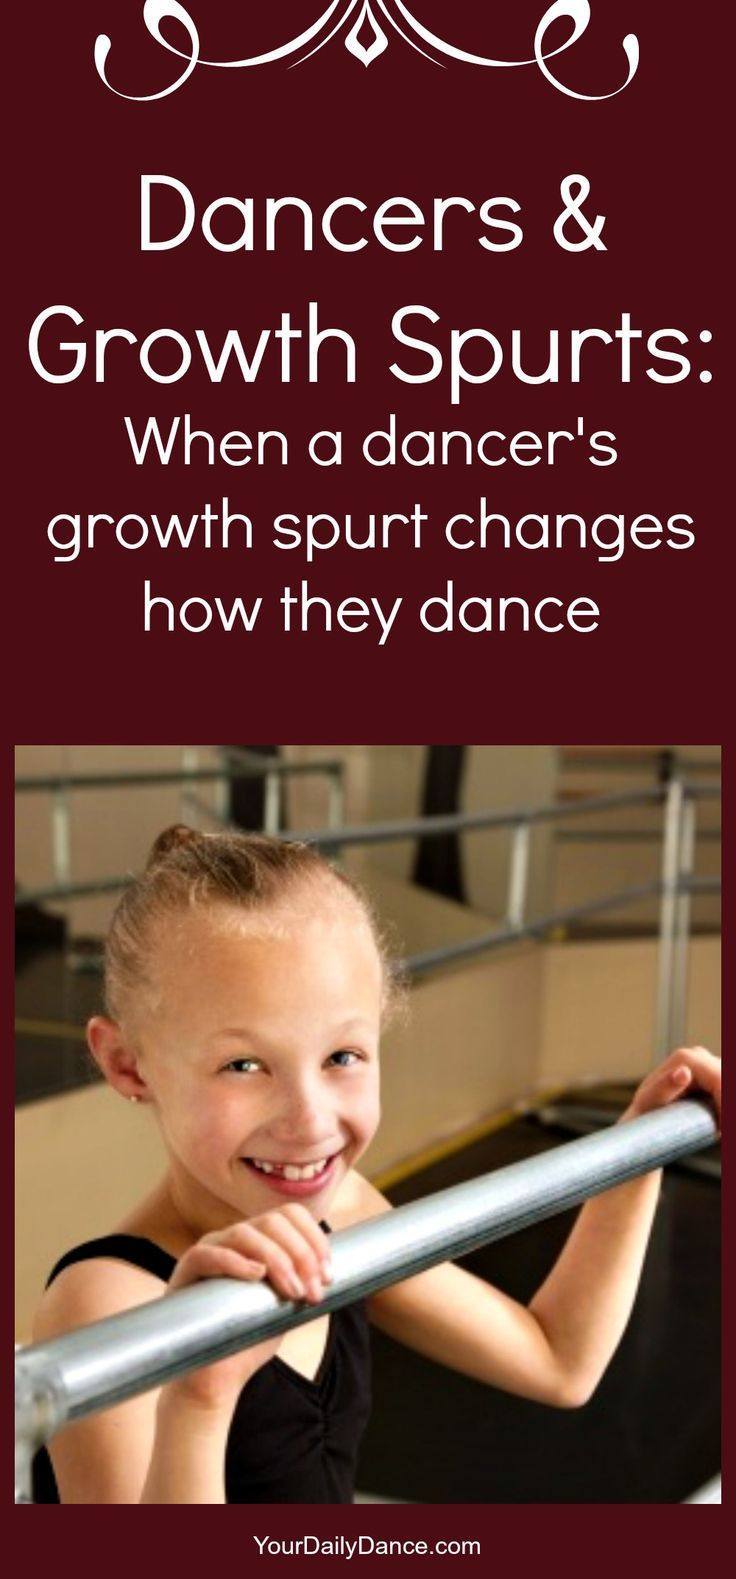 Dancers and growth spurts...